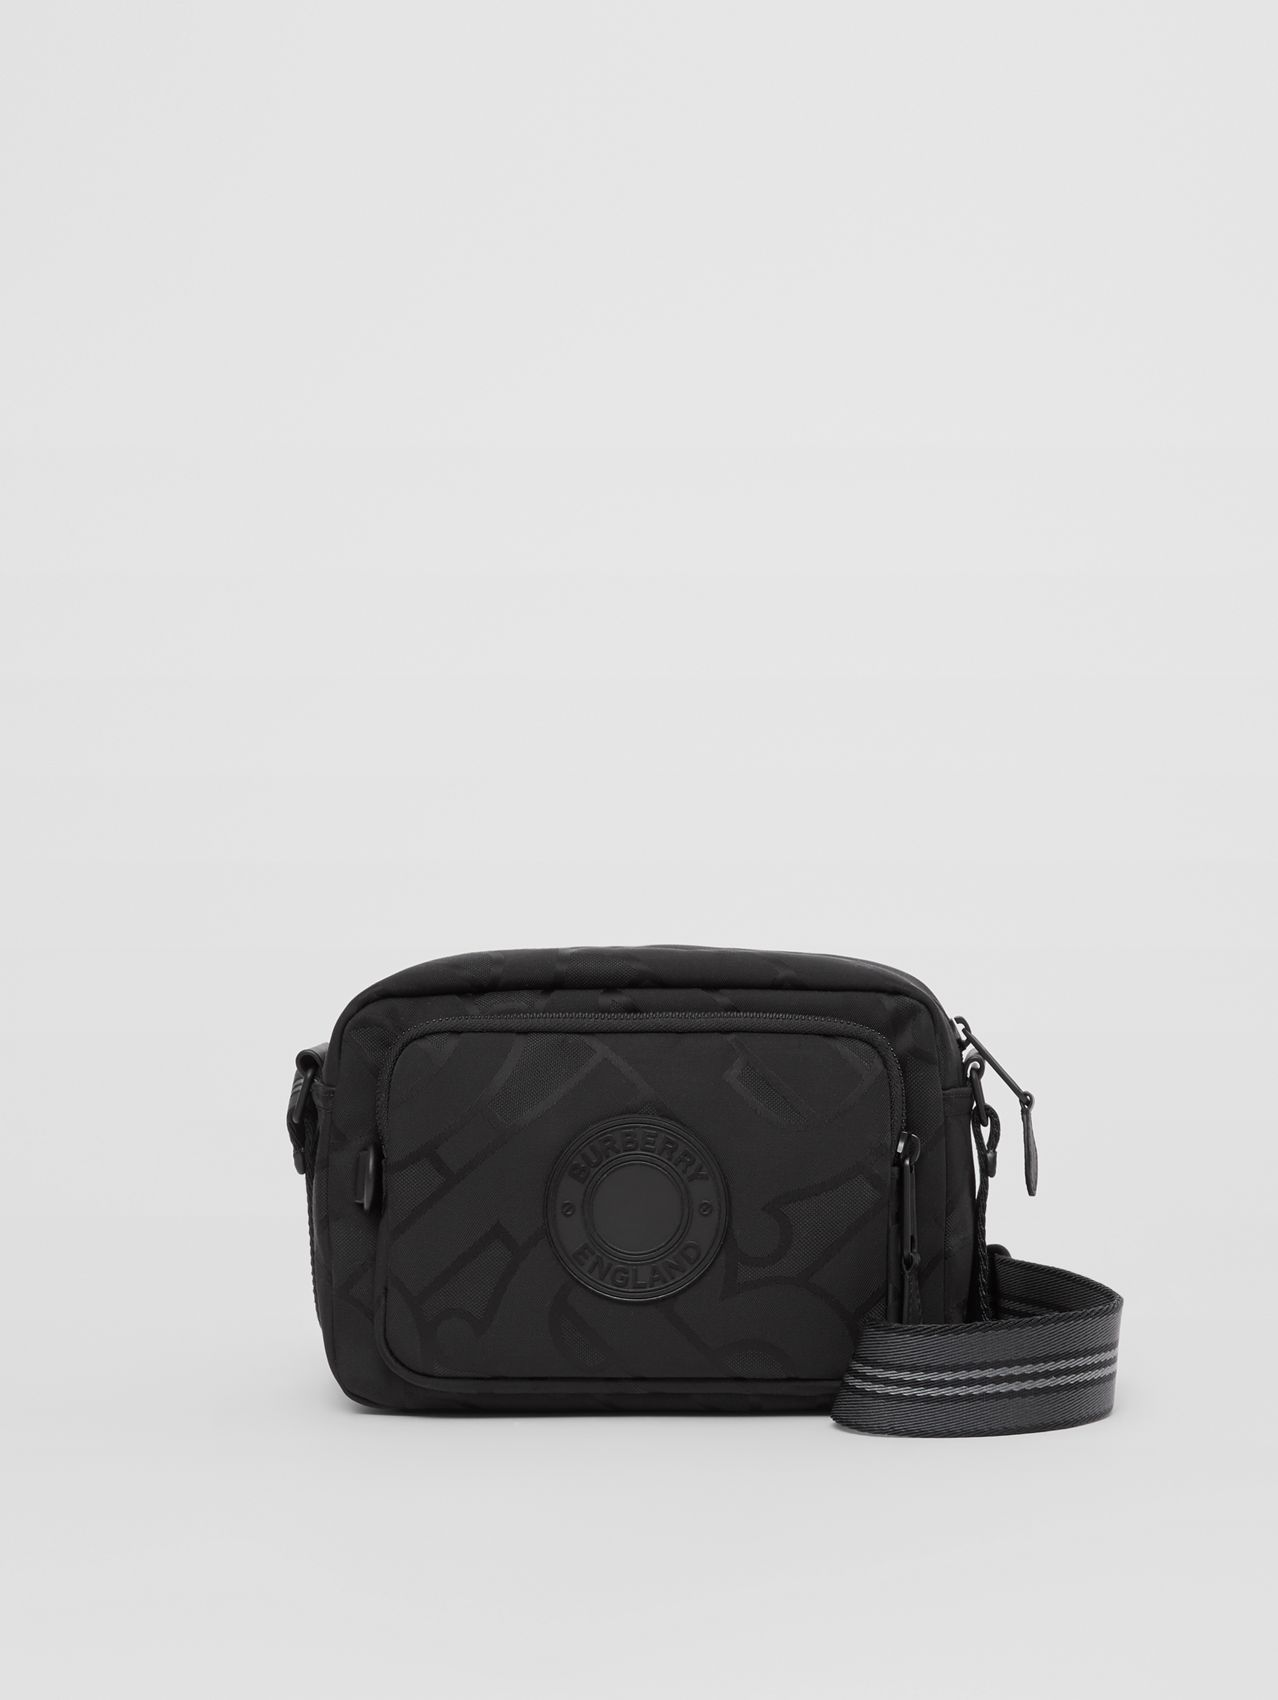 Monogram Recycled Polyester Crossbody Bag in Black